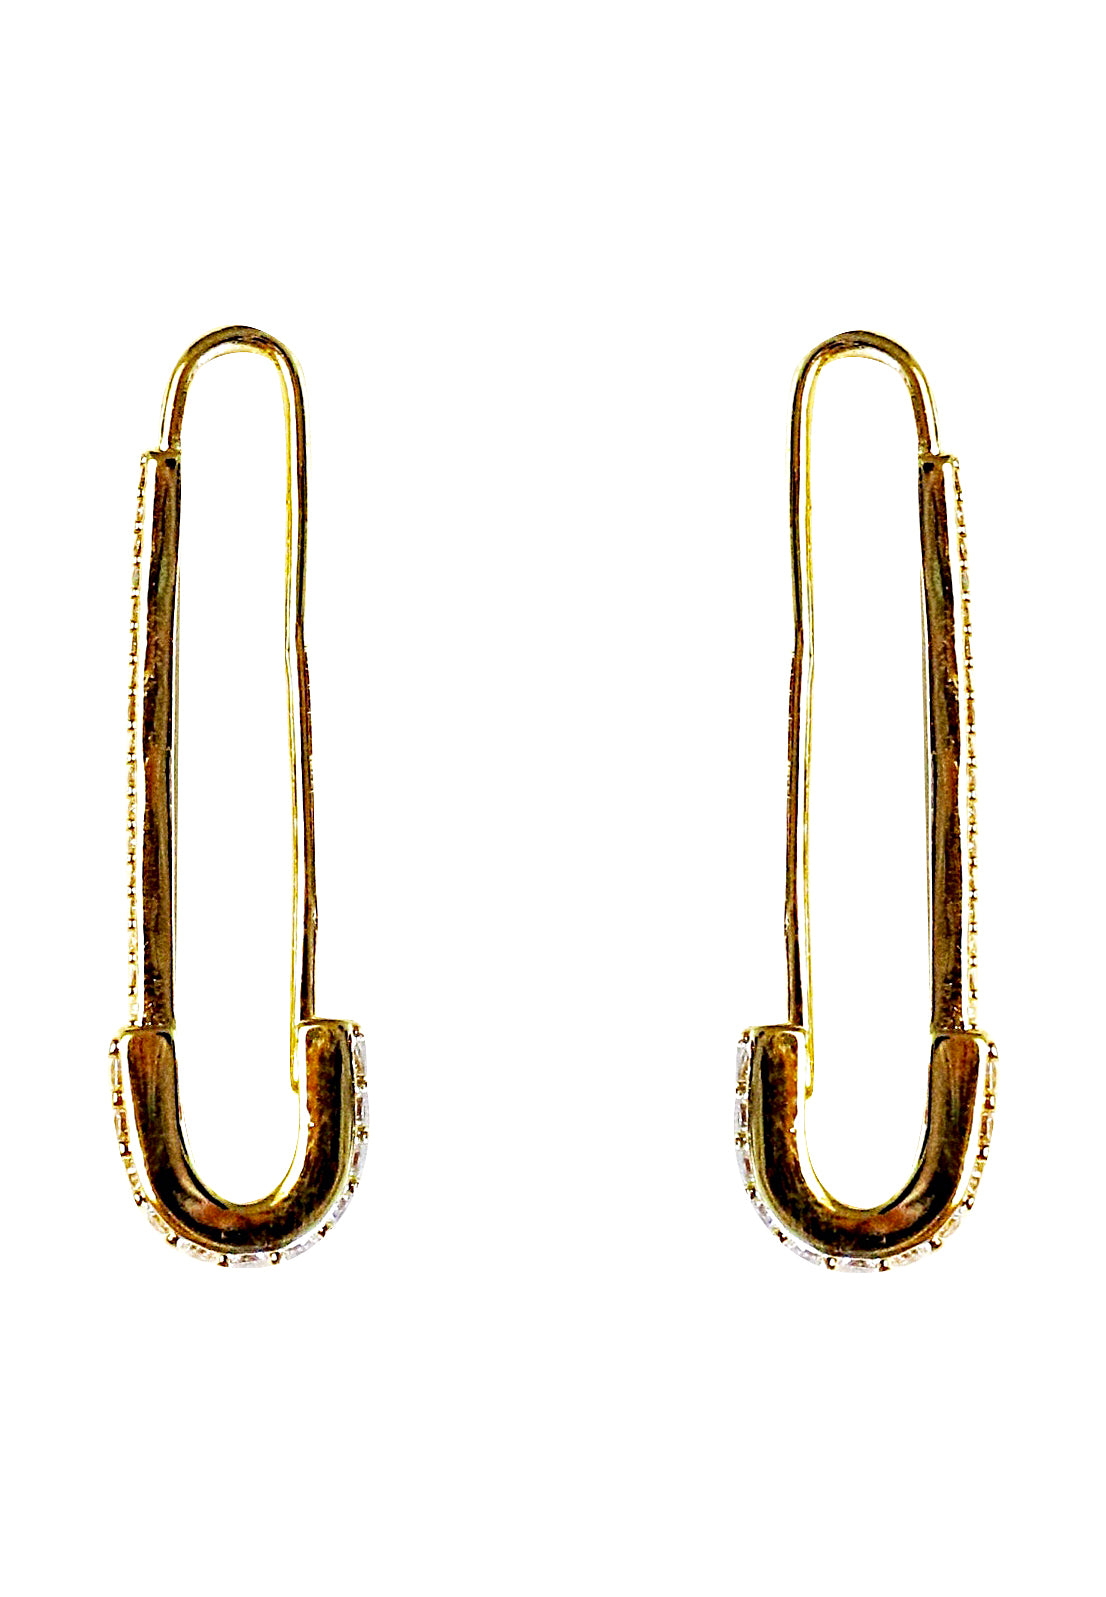 18k yellow gold-plated Pin earrings